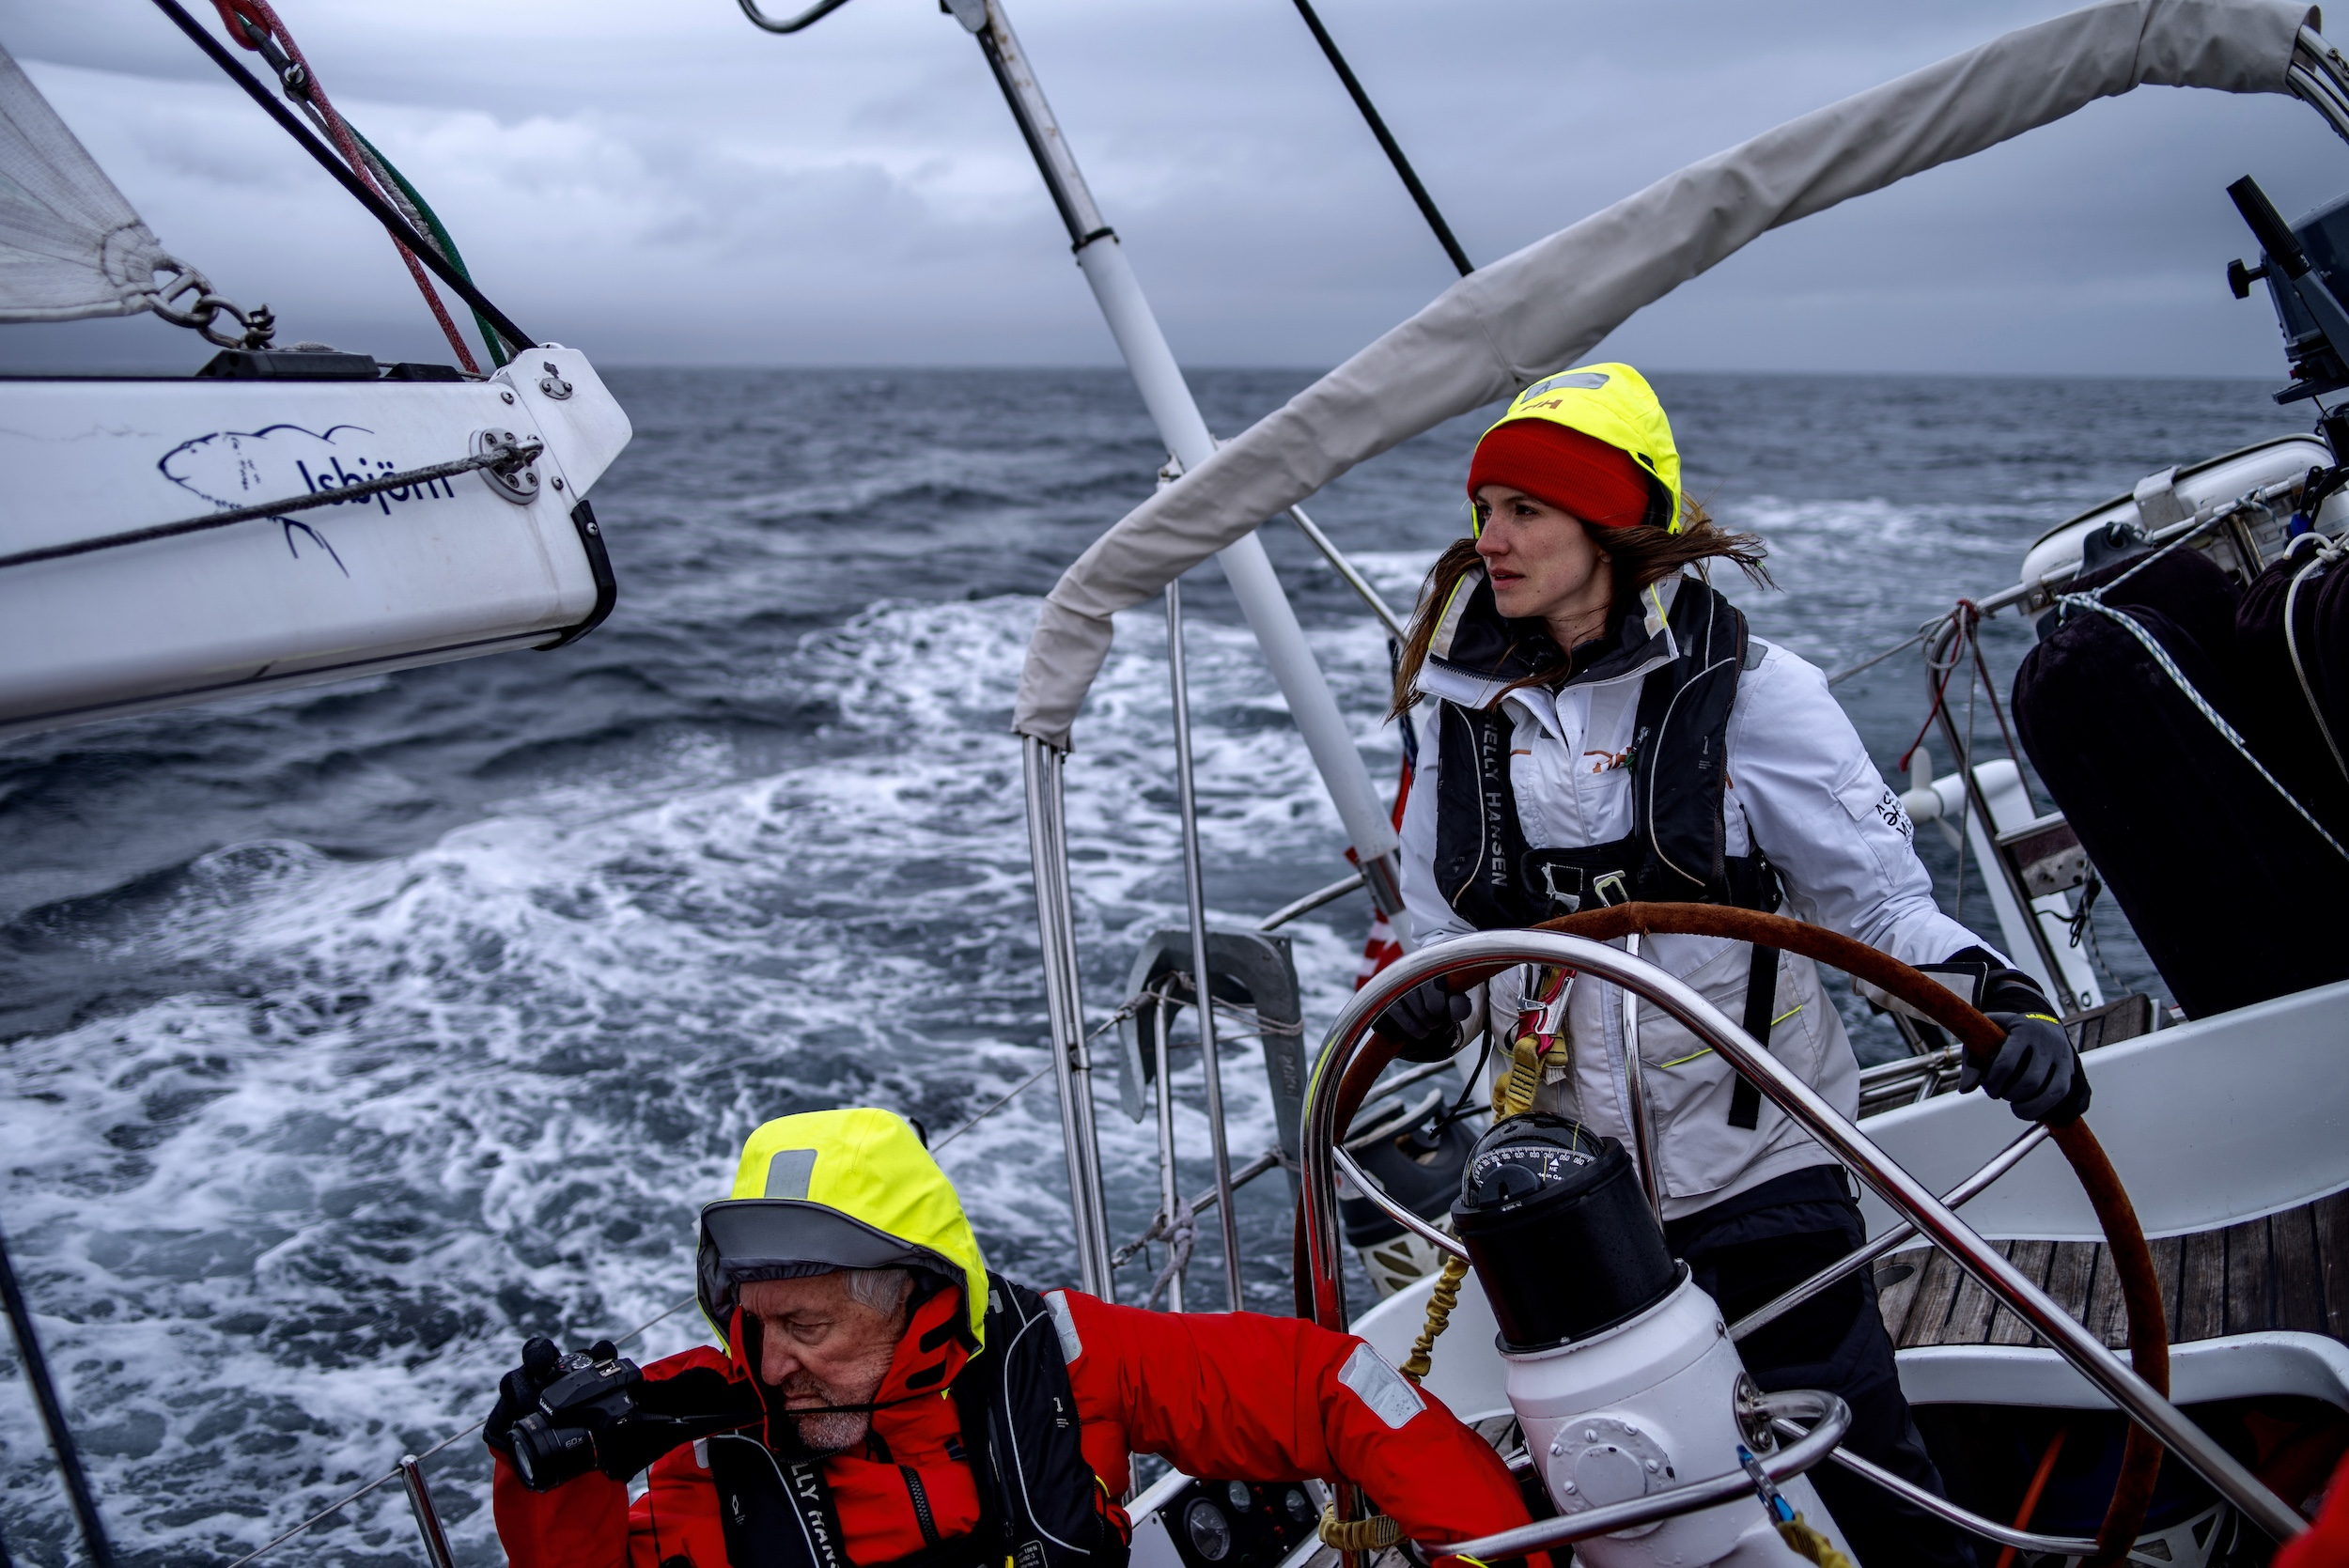 Laura at the helm while Tom films Isbjorn charging upwind in the Vestfjord.